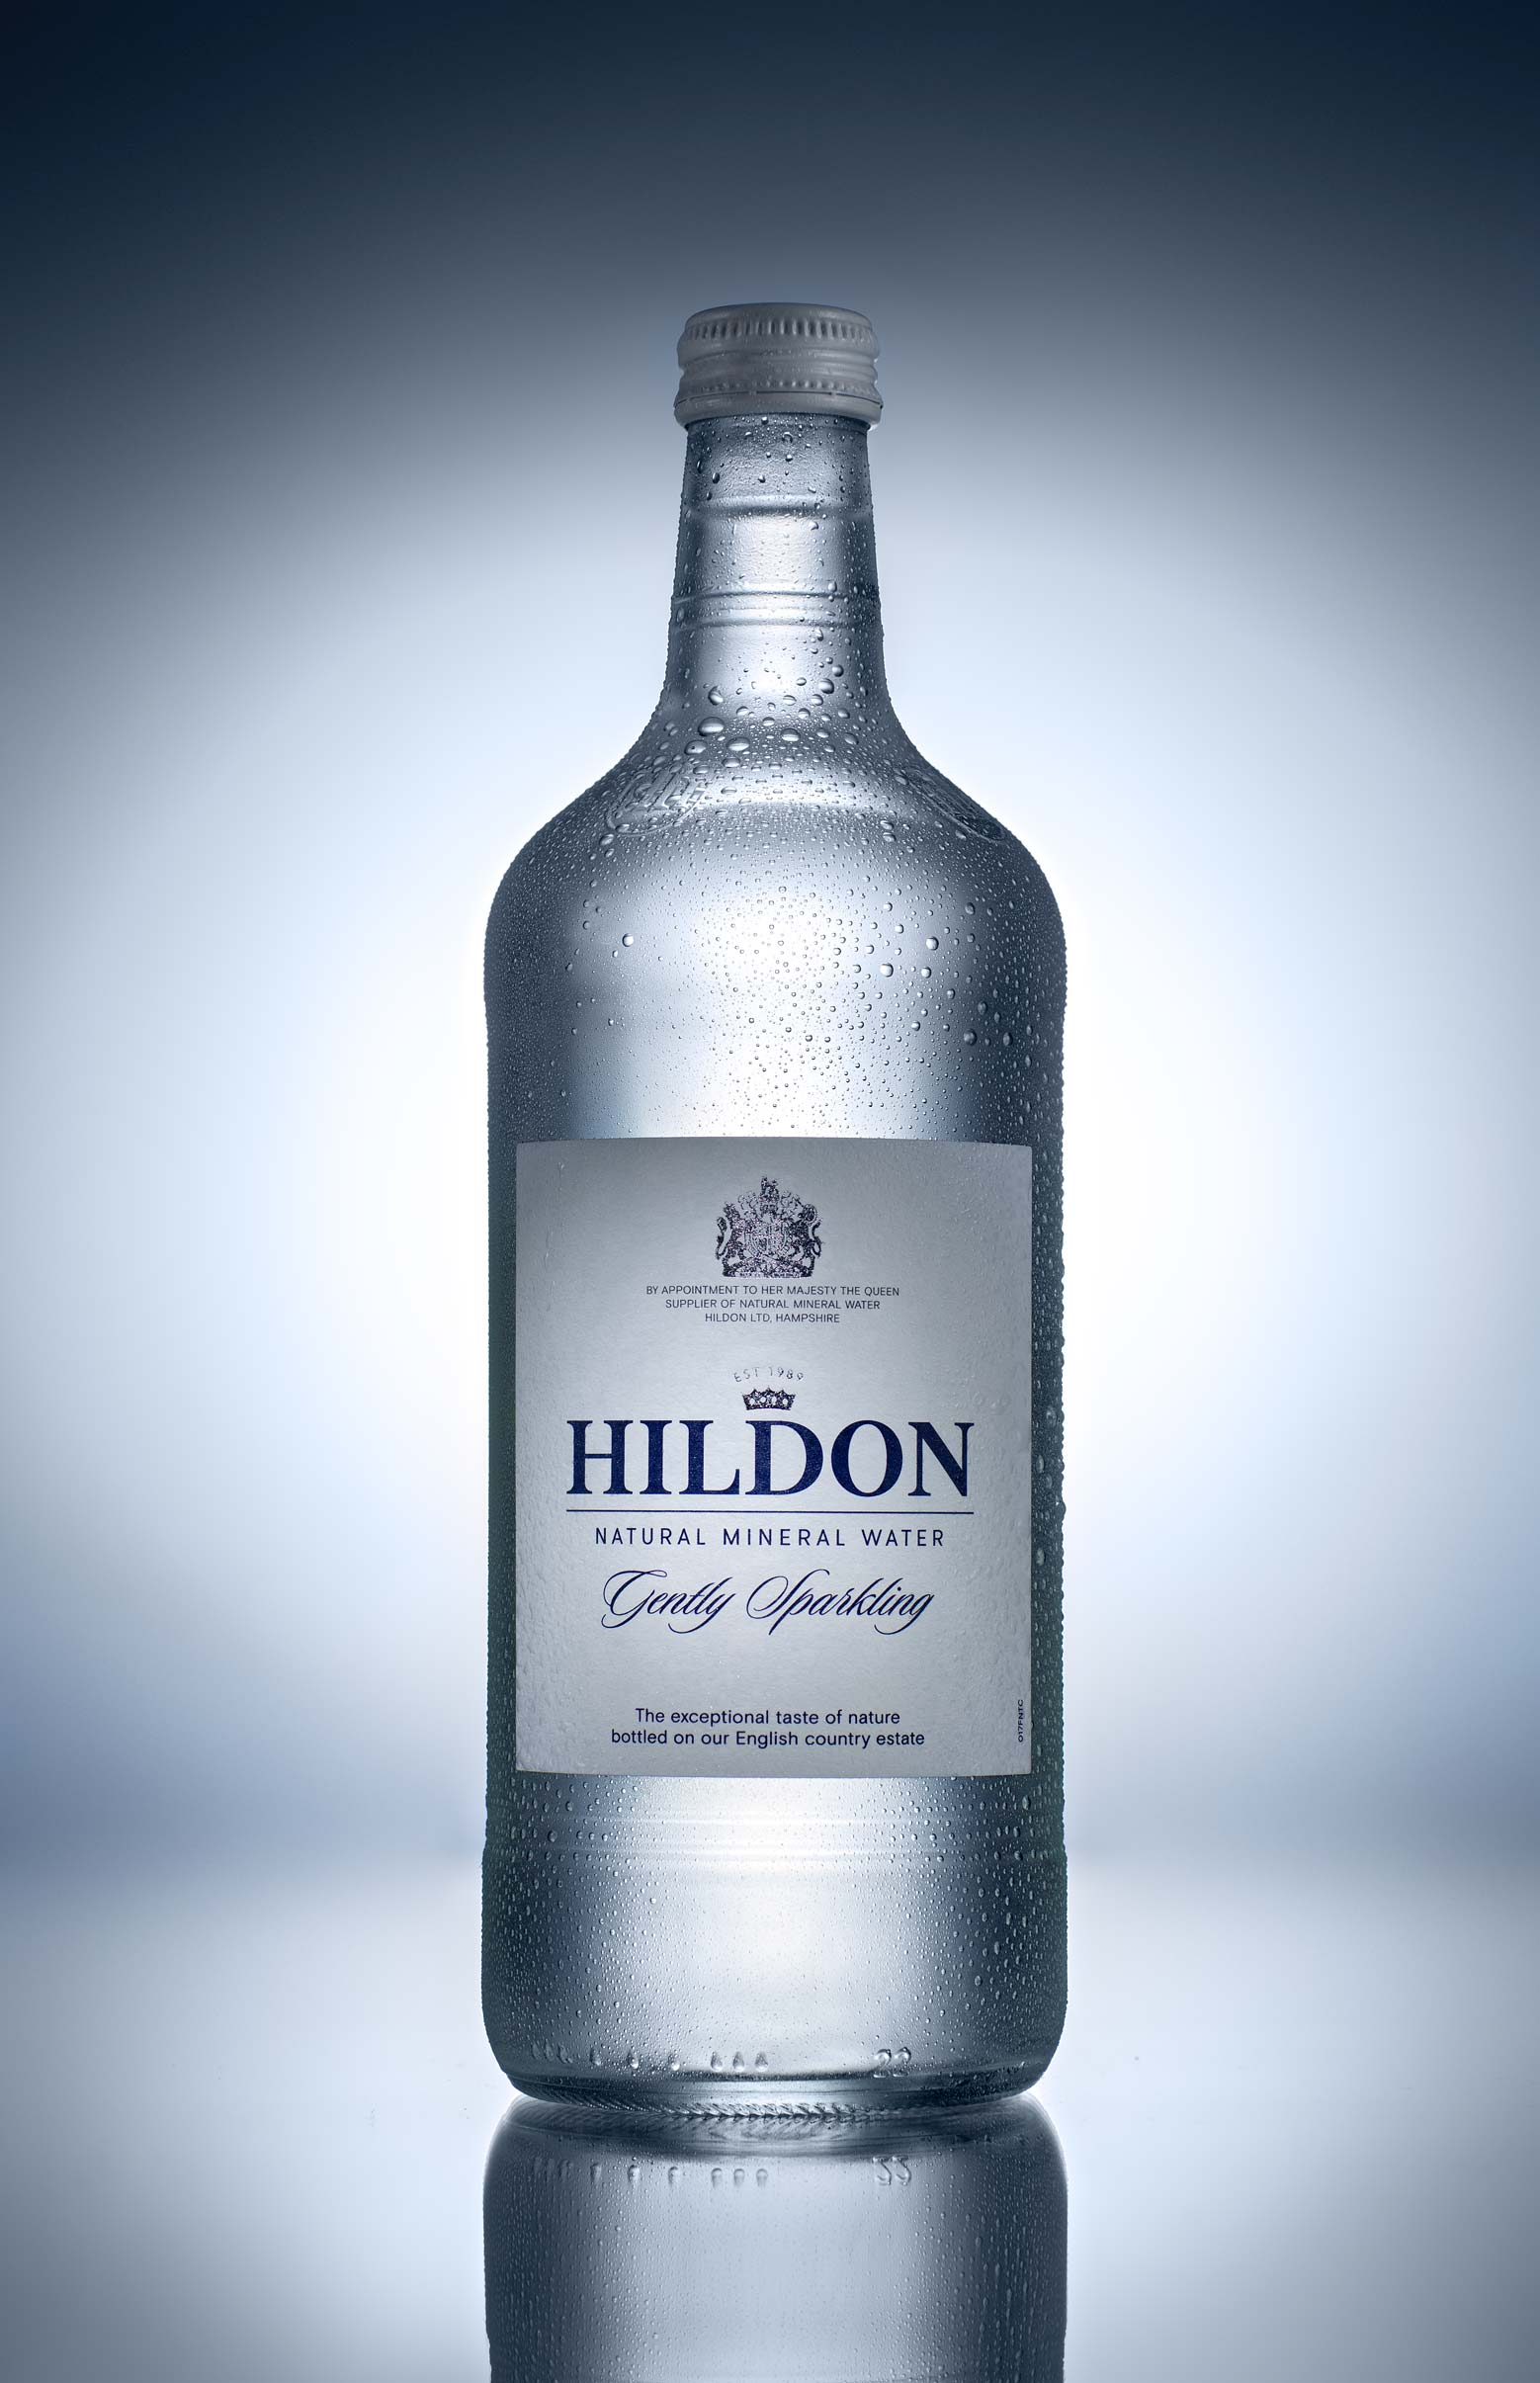 Hildon Mineral Water product photo using speedlights